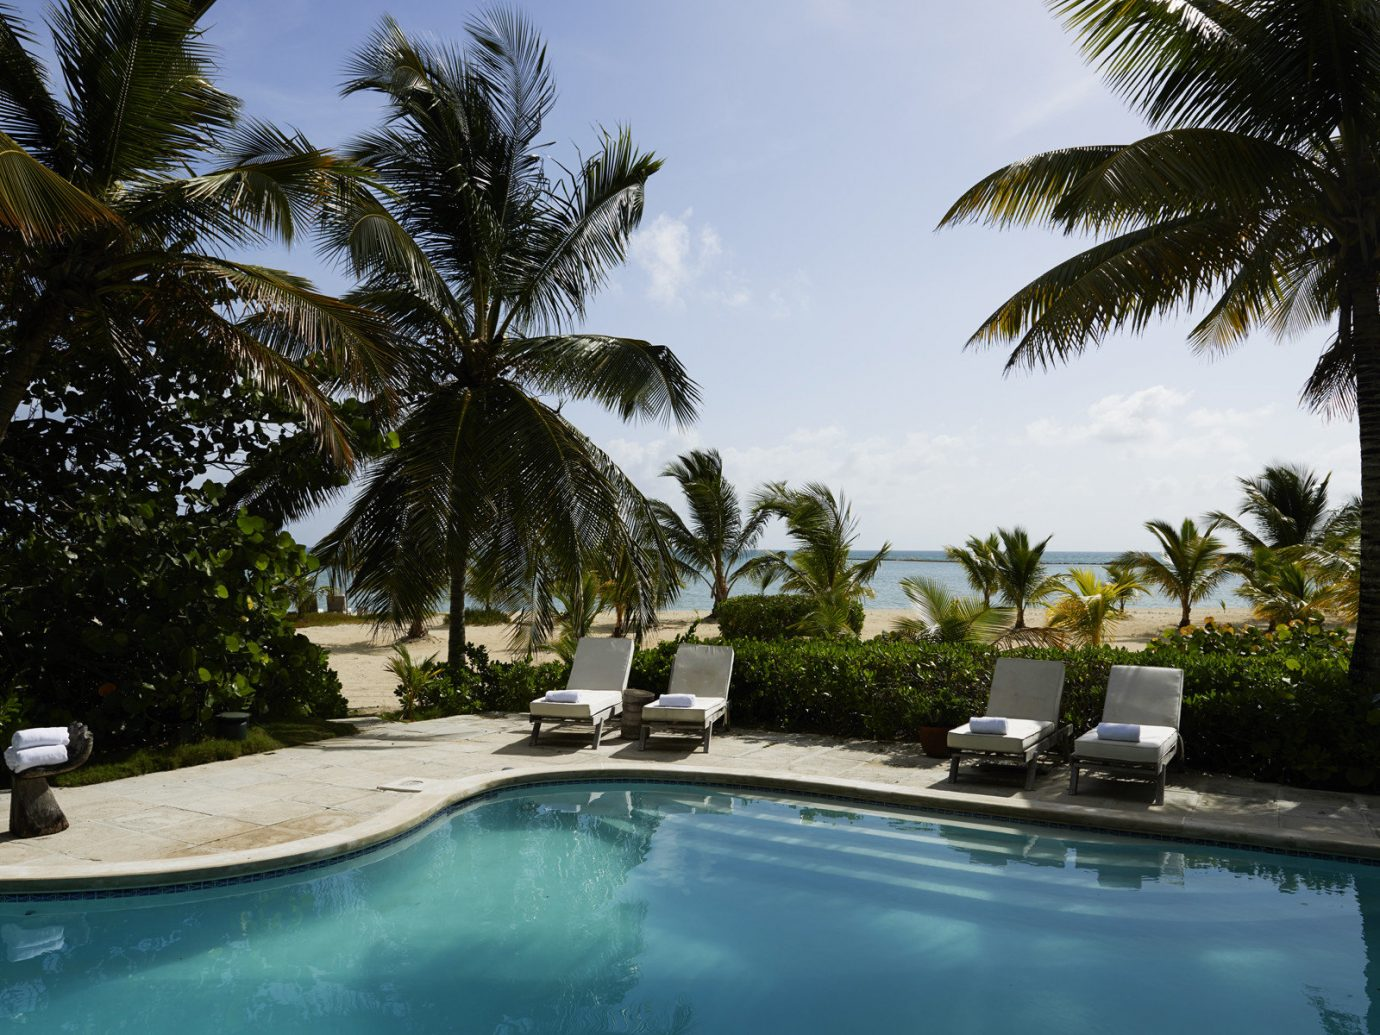 Pool at Kamalame Cay, Bahamas